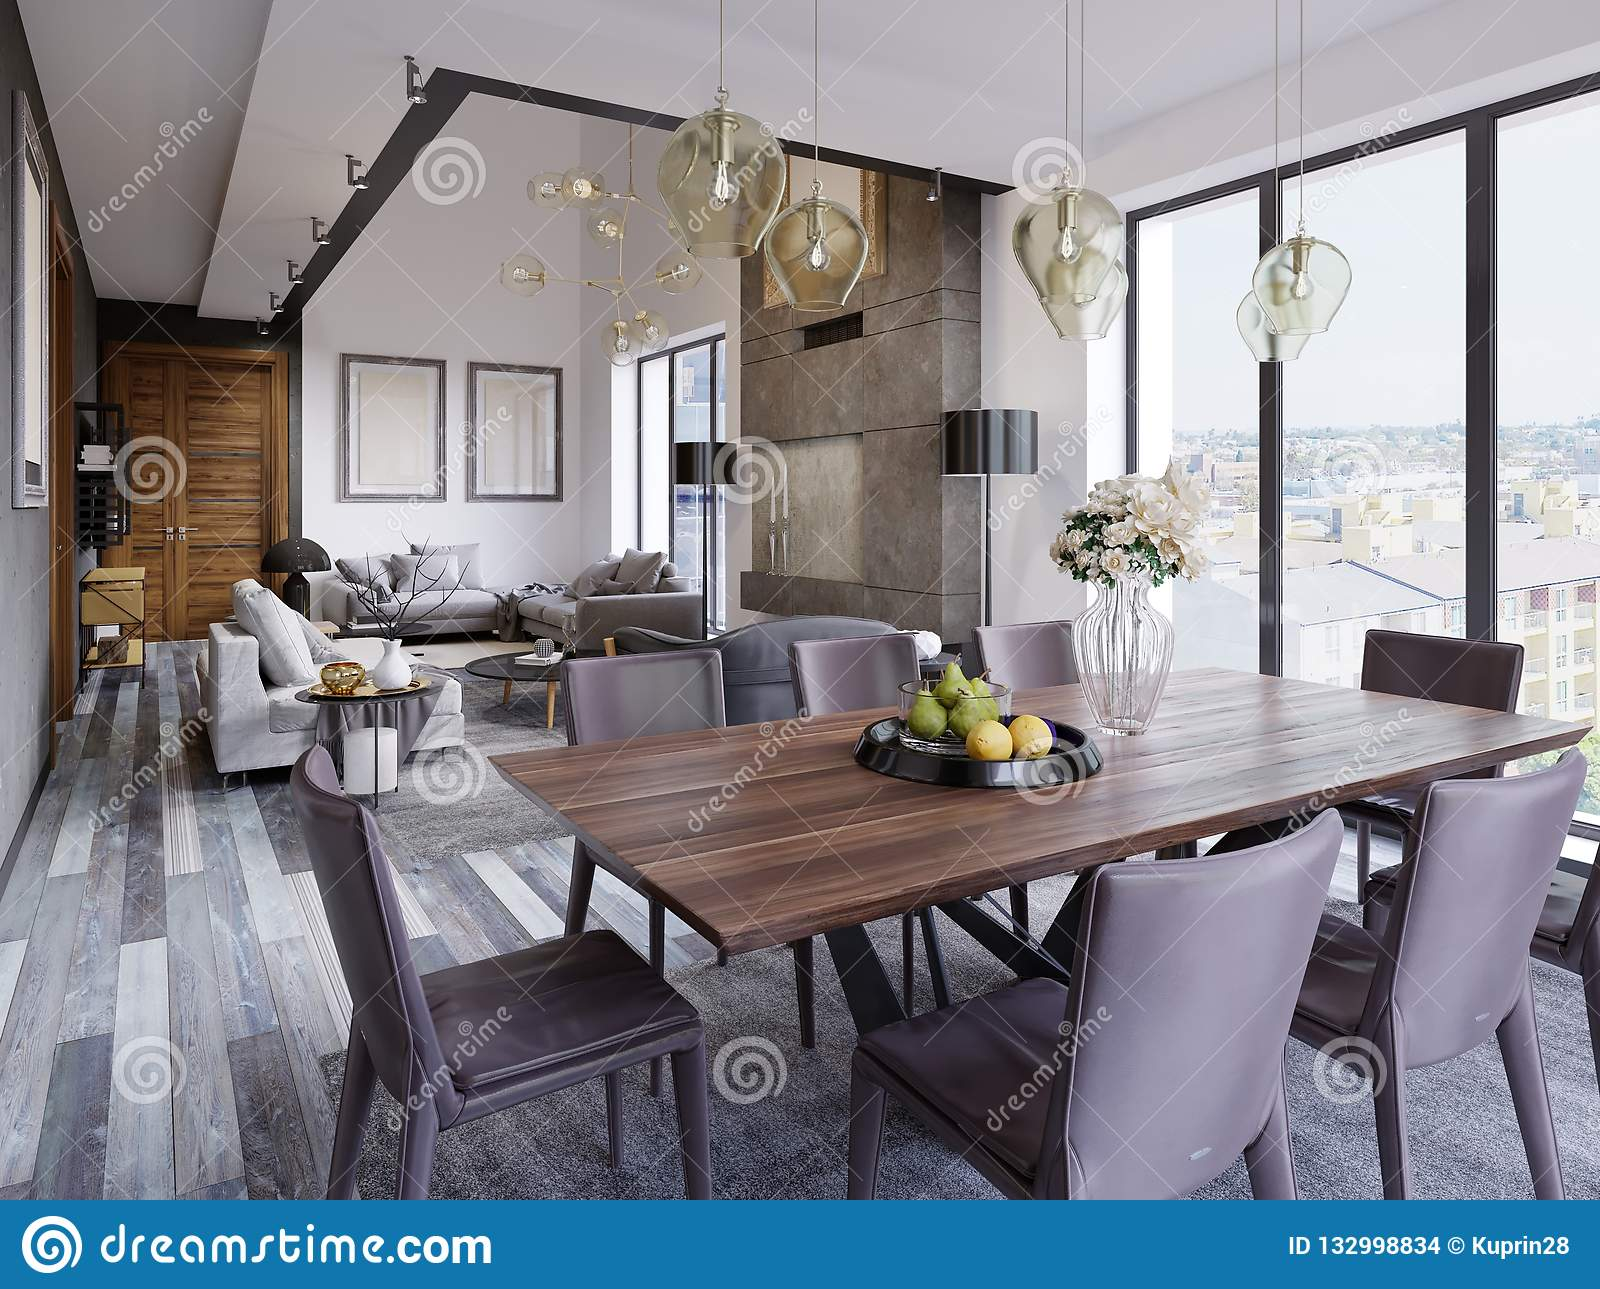 Elegant Modern Dining Room Interior In Luxury Home Kitchen And